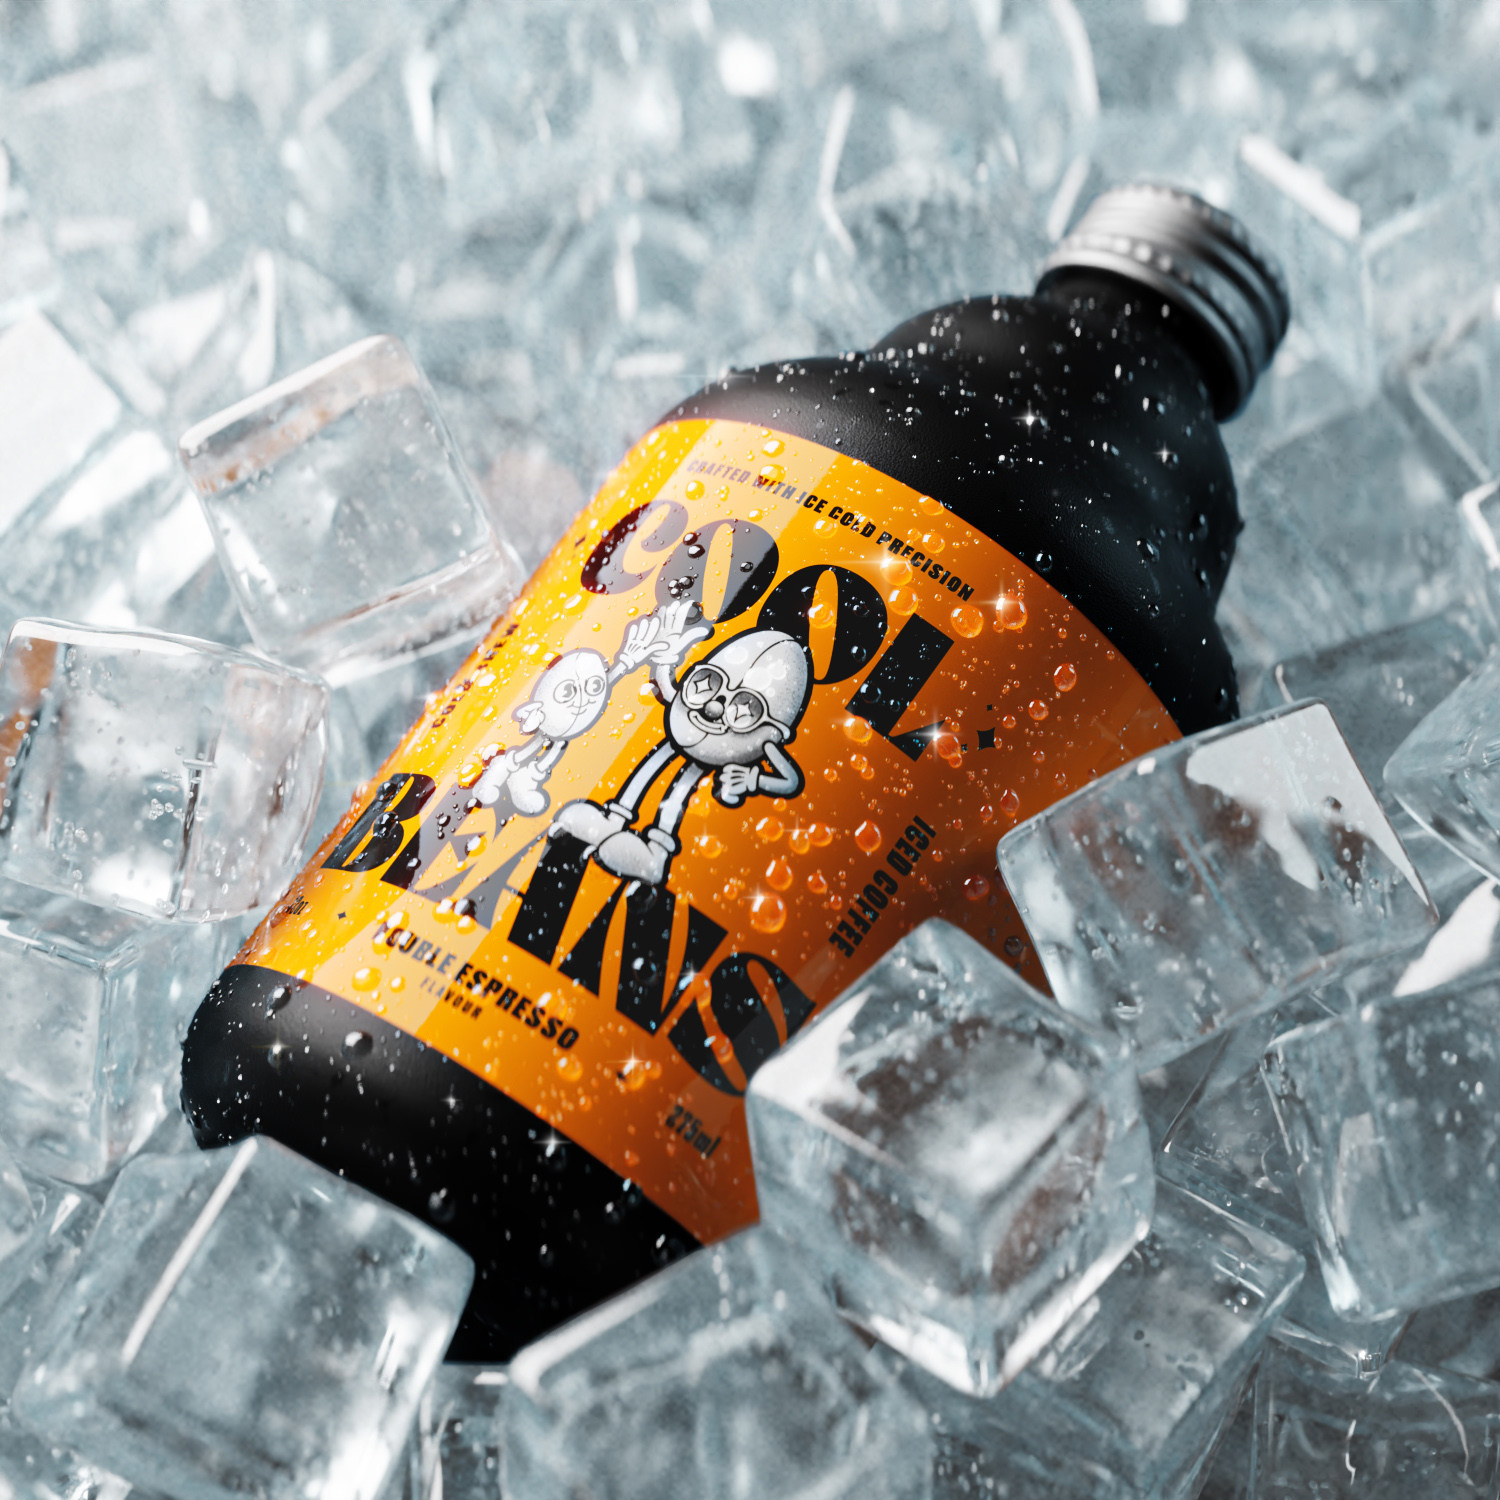 Studio Unbound Create Fresh Concept for Cool Beans, a New Iced Coffee Brand